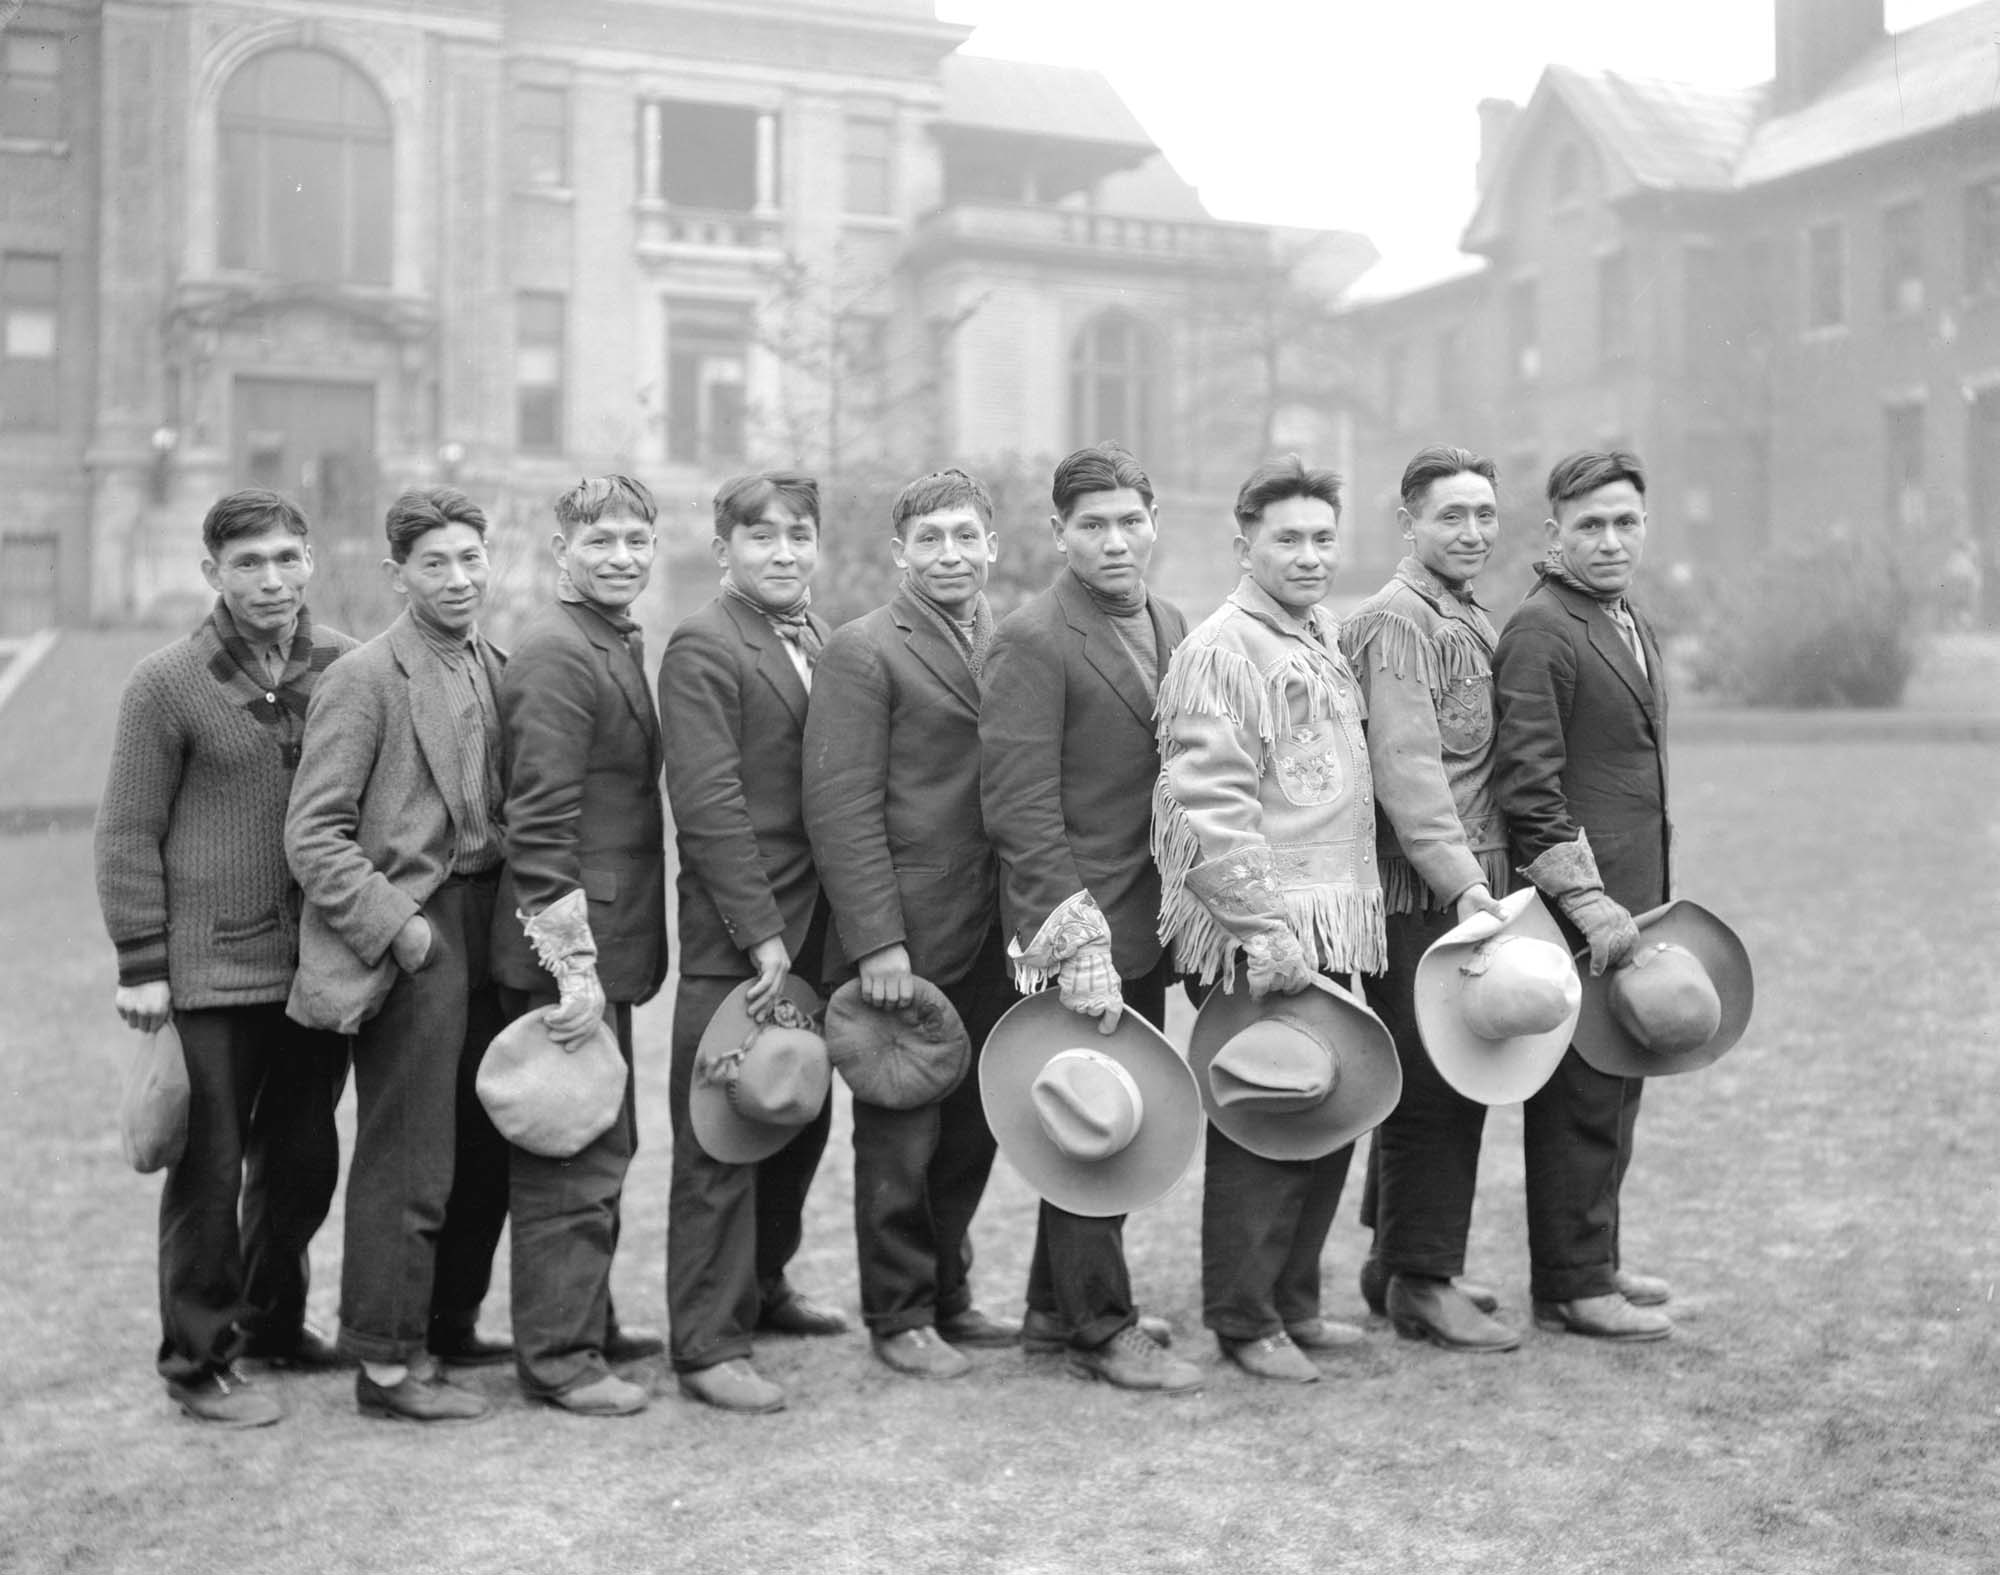 Nine men stand in a line, hats held in front of them, grinning.